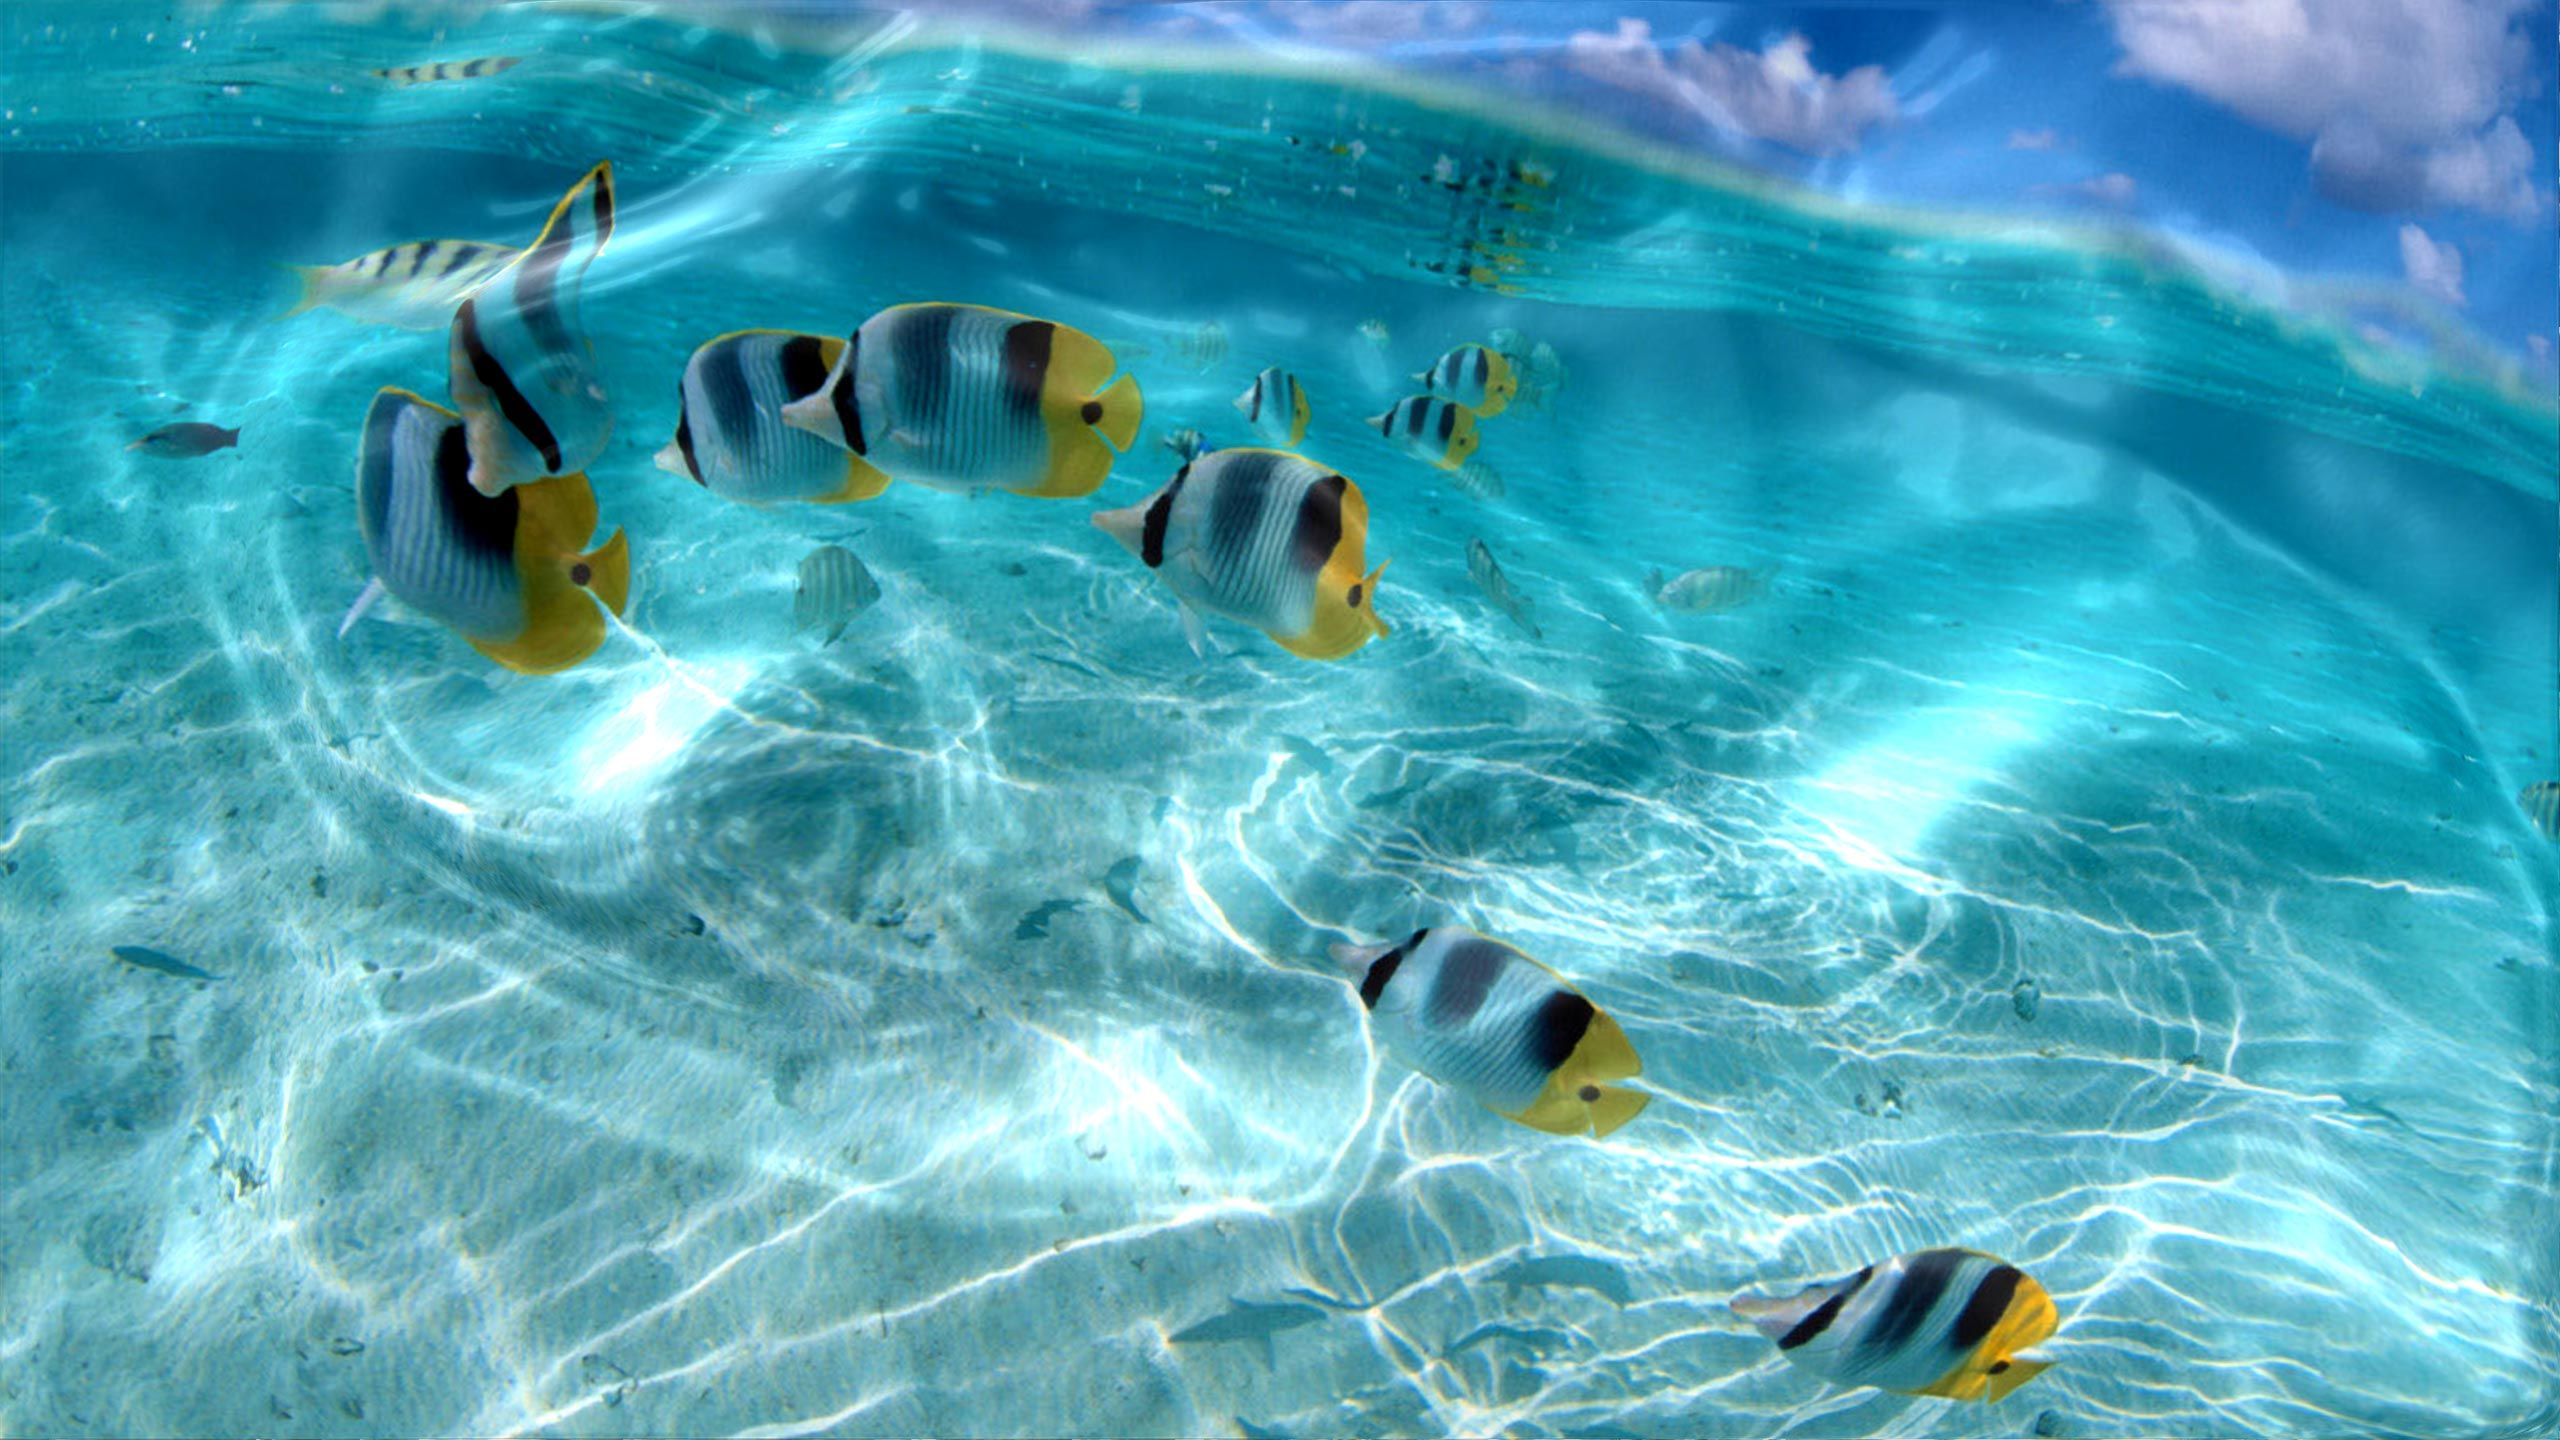 Watery Desktop Animated Wallpaper Amuzament Live Wallpaper For